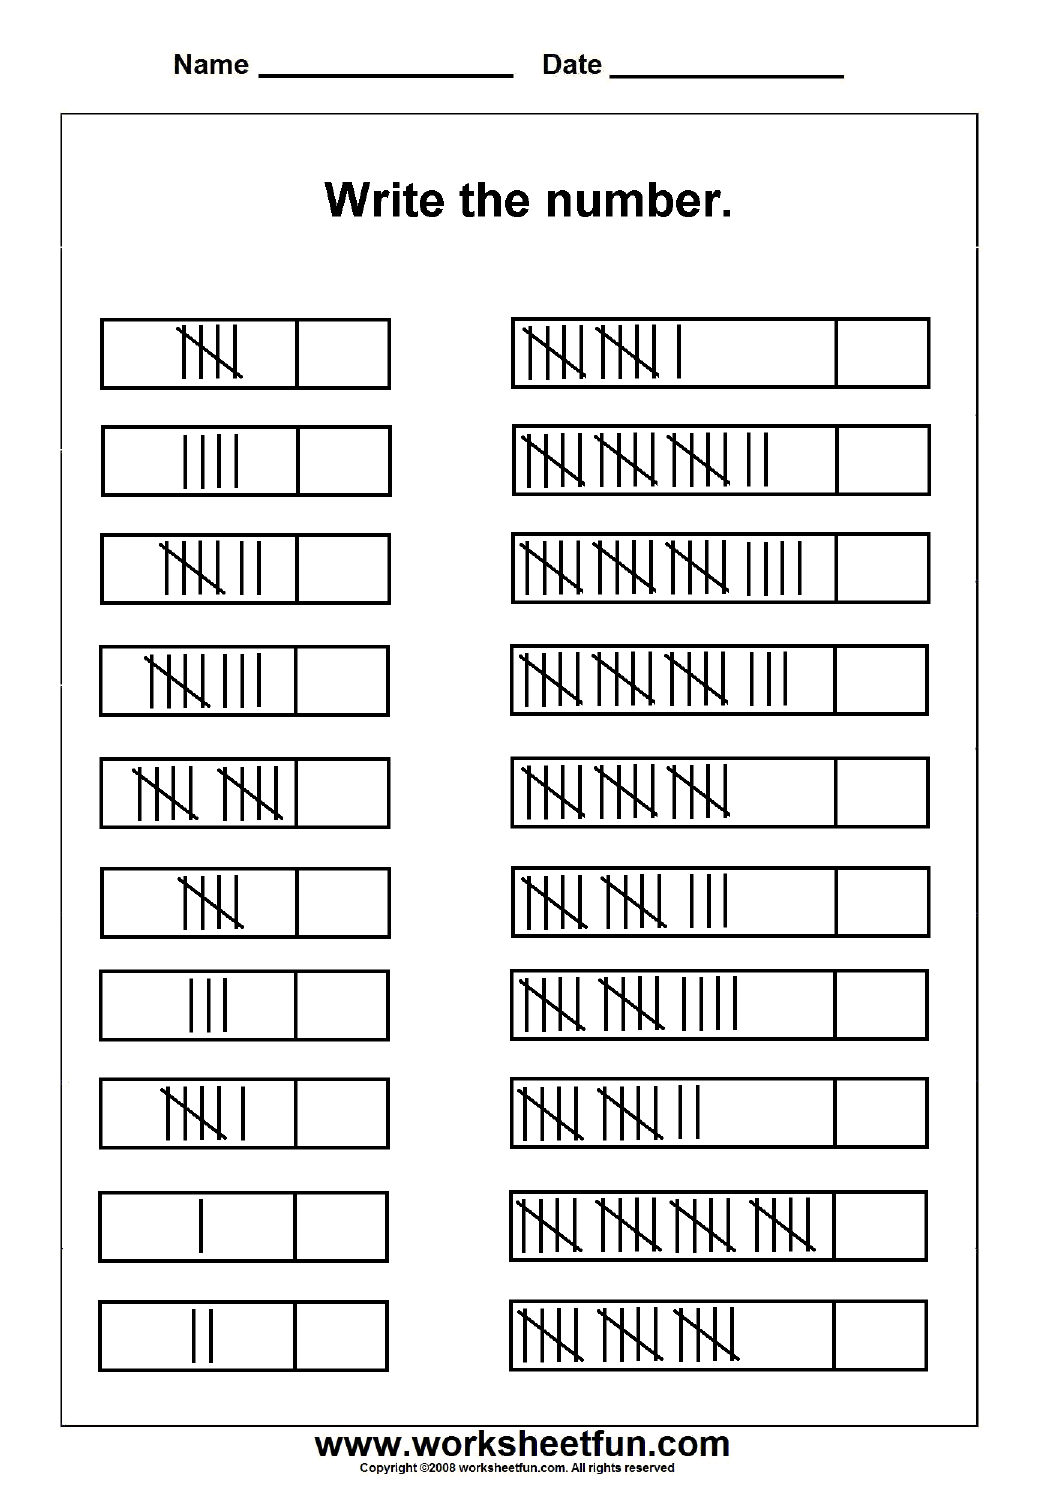 10 Best Images Of Number 17 Worksheets For Kindergarten